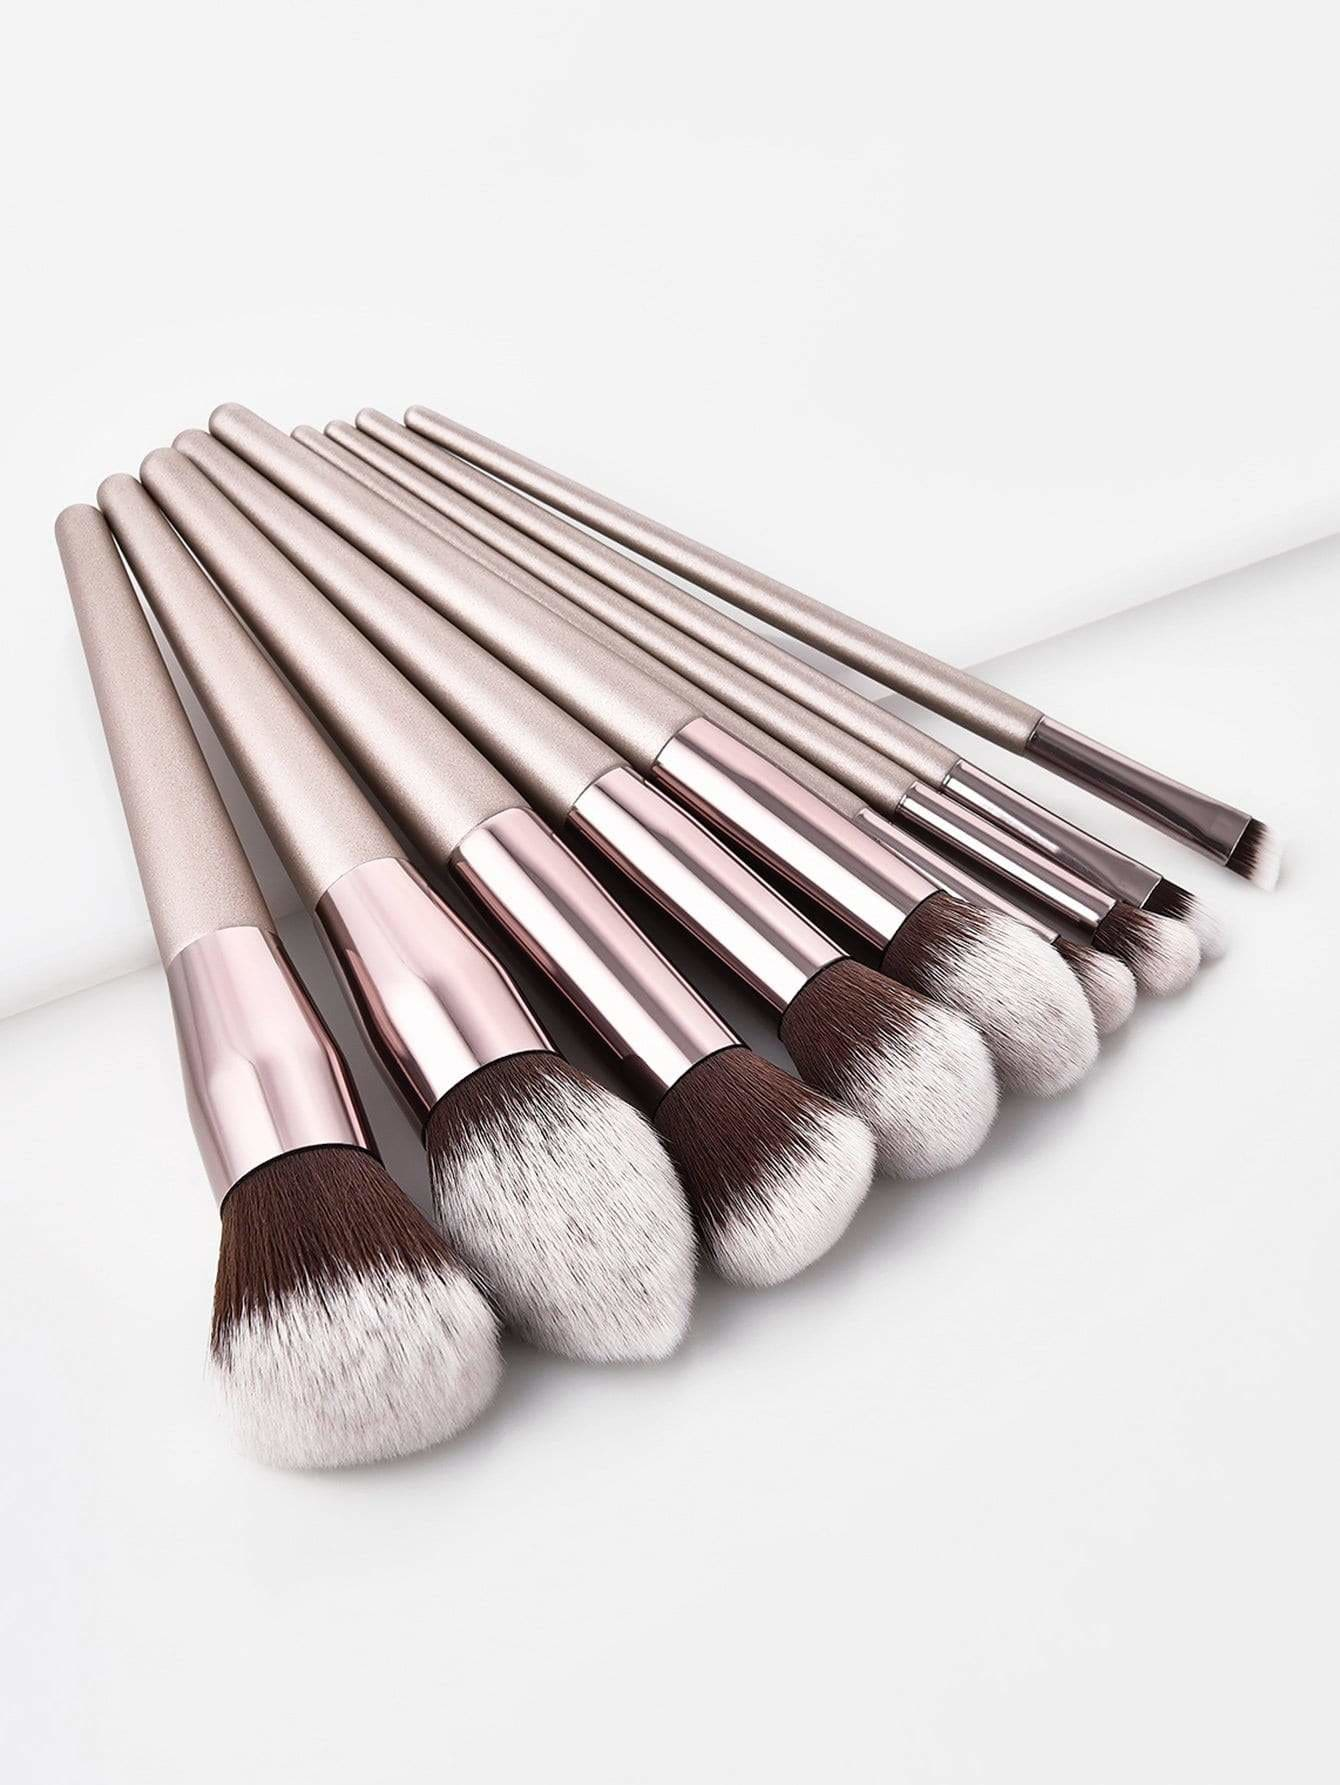 Soft Makeup Brush 9pcs